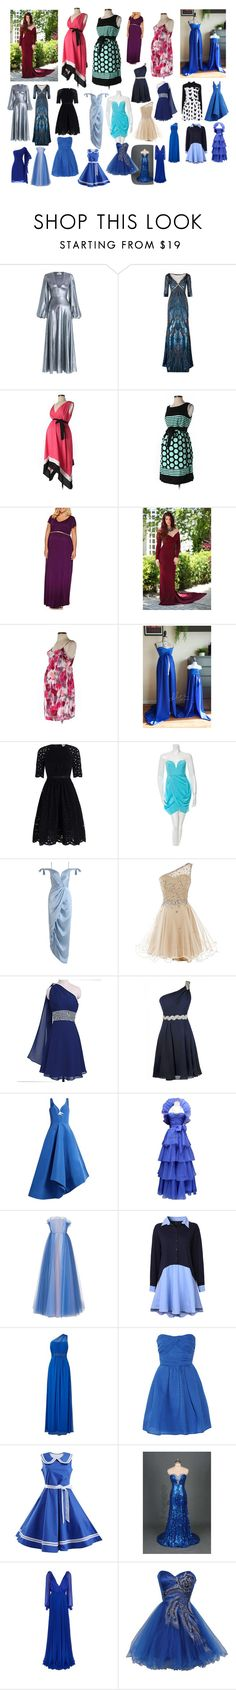 """""""A.C.E. Random Gowns"""" by asherthecrimsonfox ❤ liked on Polyvore featuring Zimmermann, Jenny Packham, Motherhood Maternity, Rosie Assoulin, Jean-Louis Scherrer, LUISA BECCARIA, Adrianna Papell, Carven, Victoria Beckham and plus size dresses"""